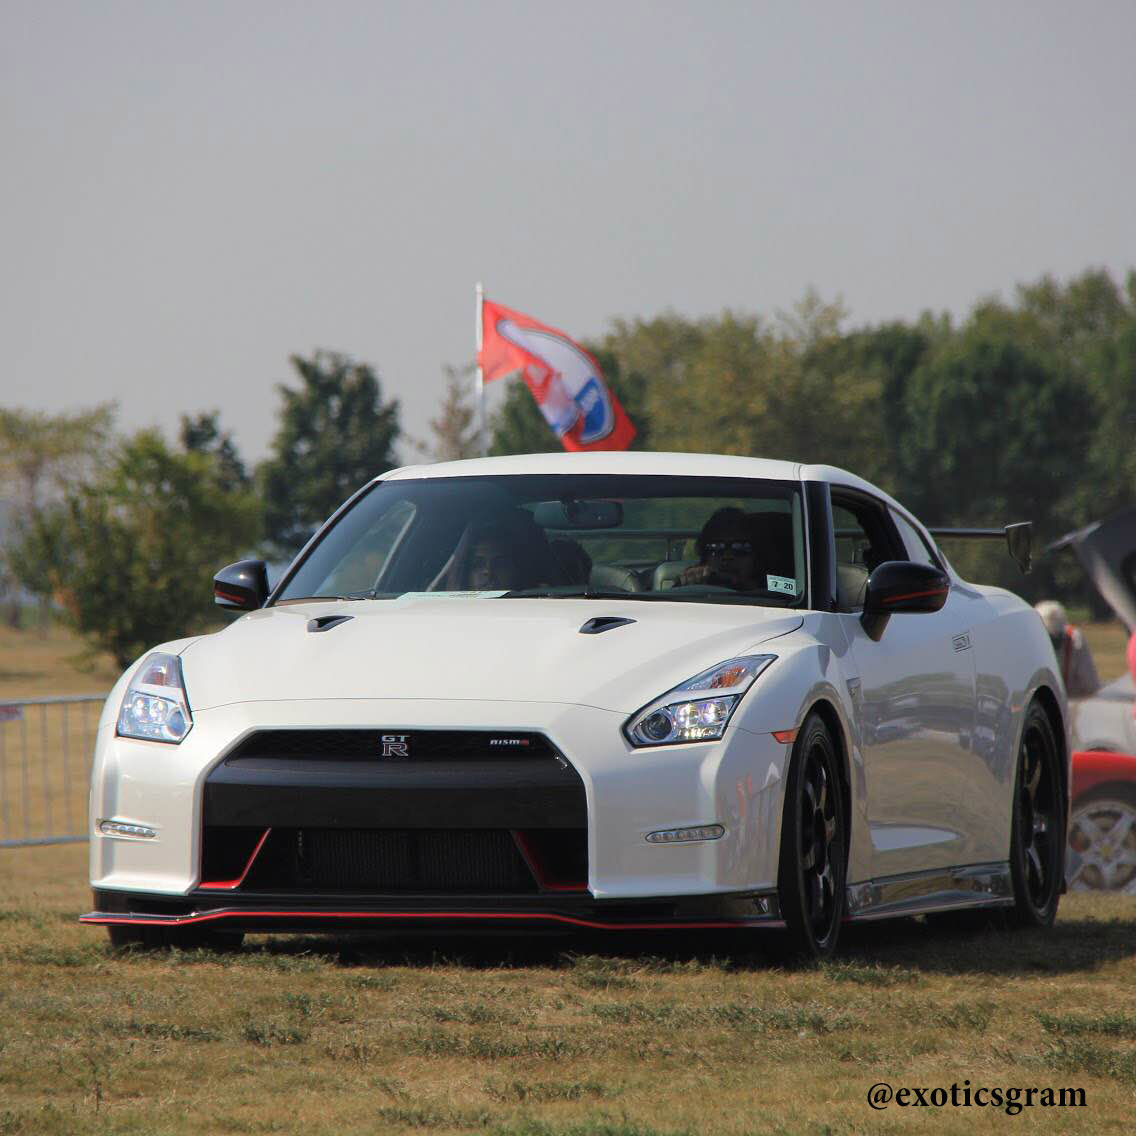 Driven by Purpose, GTR